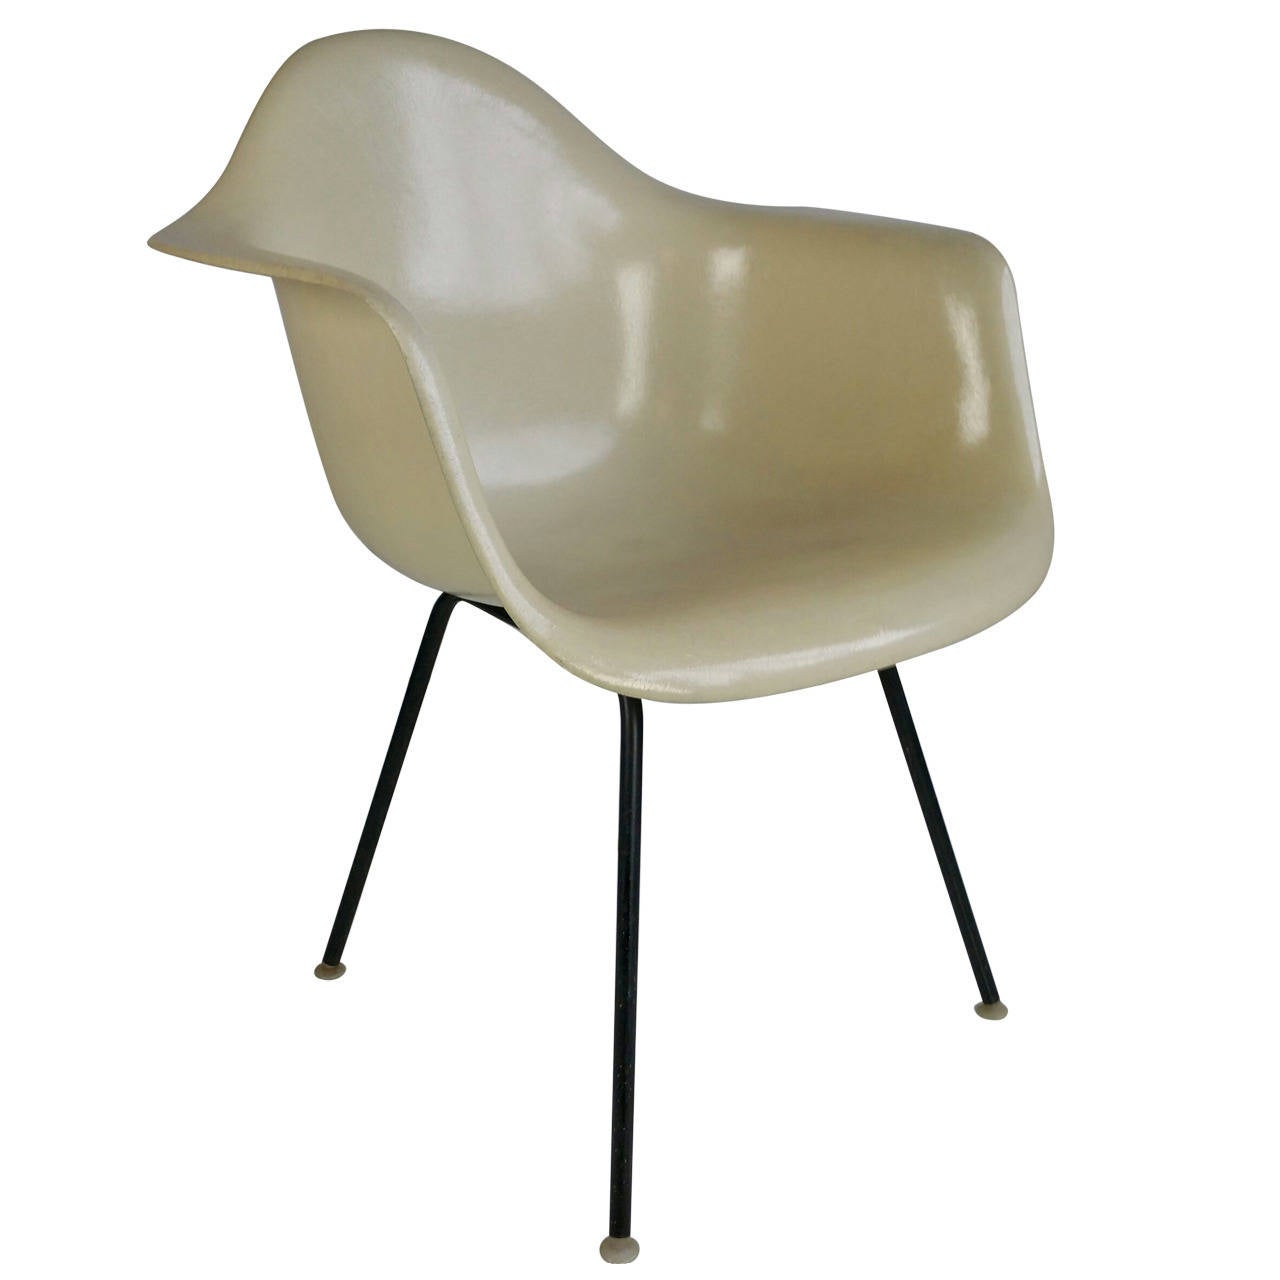 Charles eames parchment arm shell chair herman miller for sale at 1stdibs - Eames chair herman miller ...